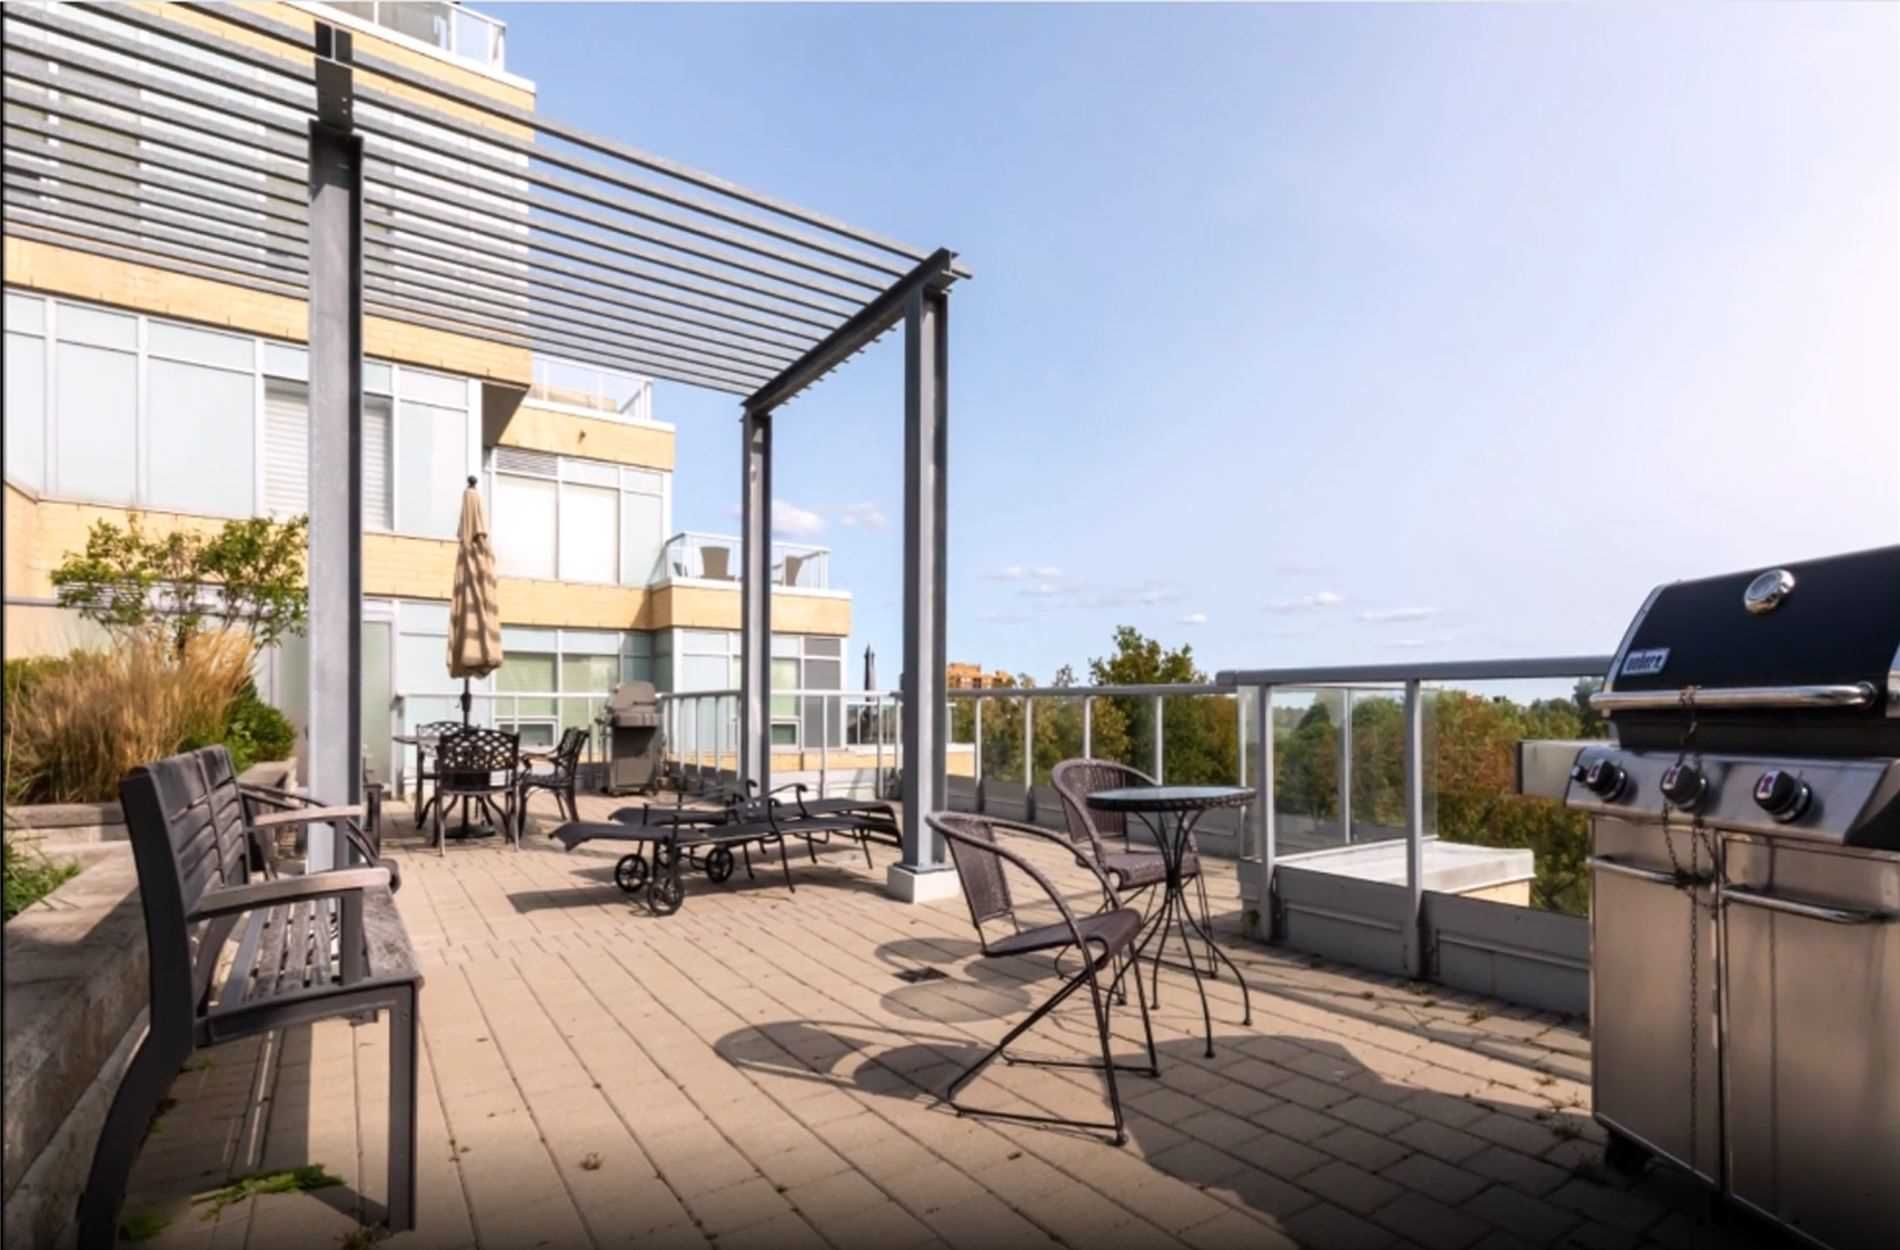 701 Sheppard Ave W, unit 621 for sale in Toronto - image #2